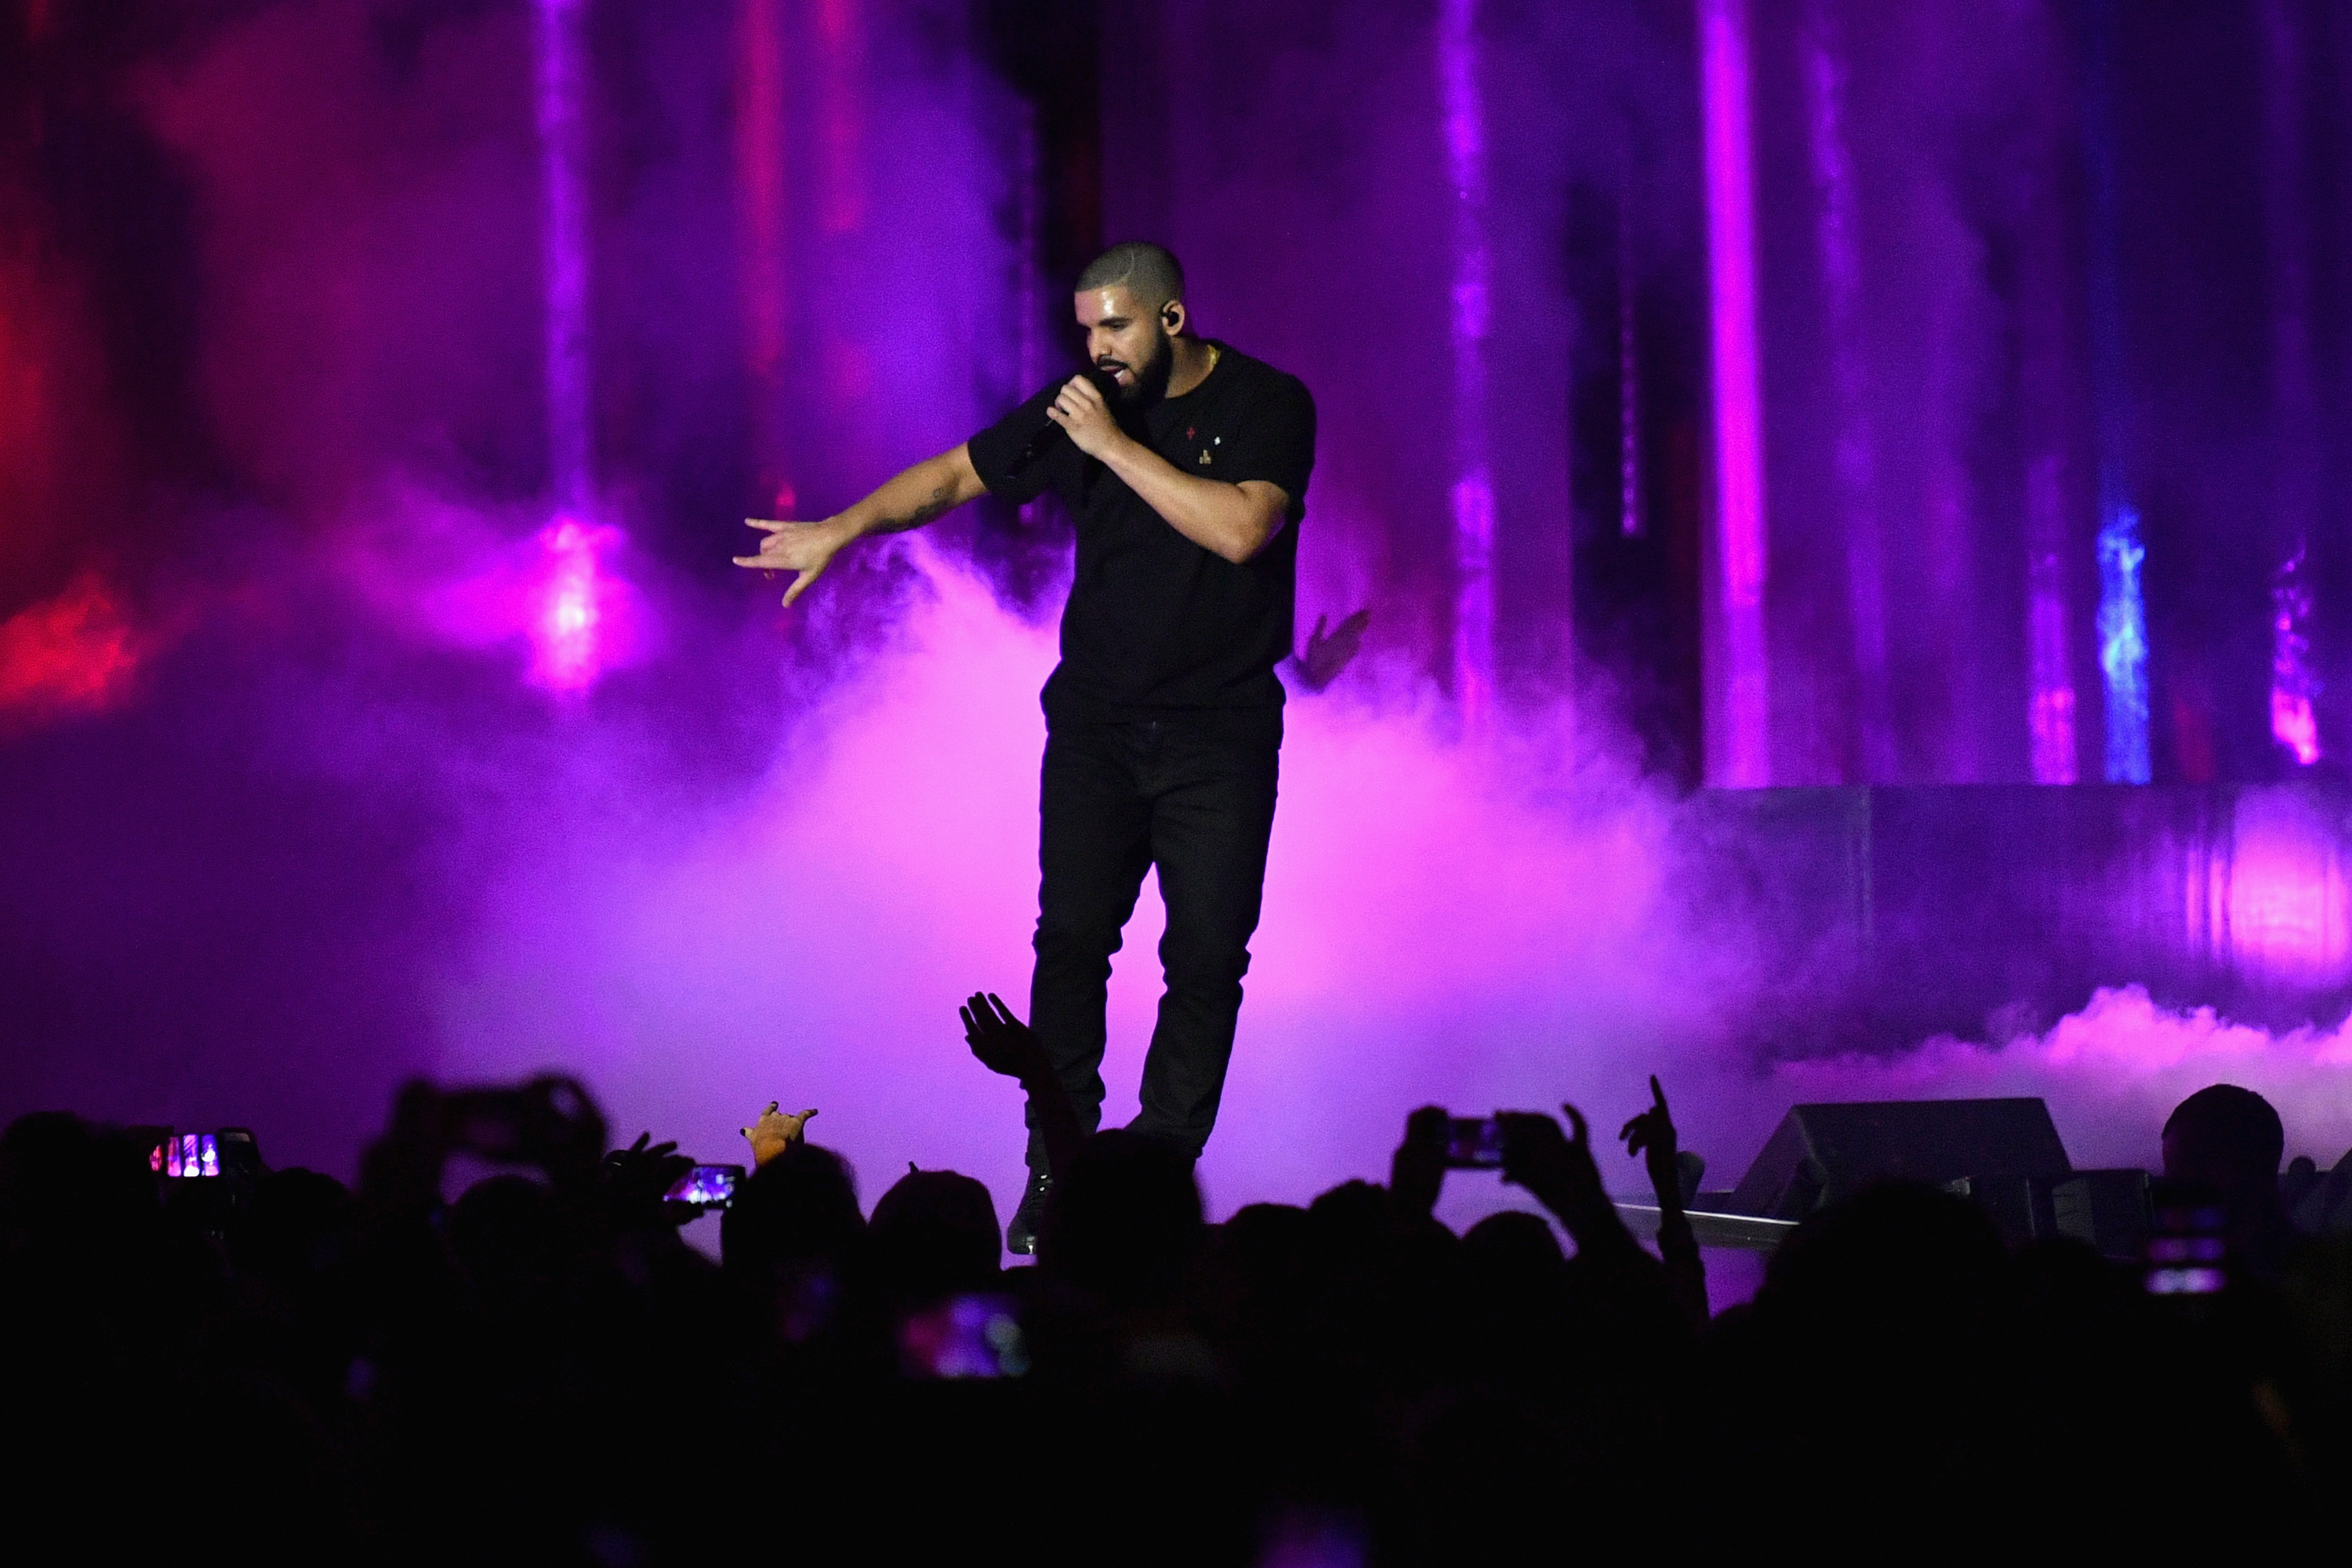 Drake performs onstage at the iHeartRadio Music Festival on September 23, 2016 in Las Vegas, Nevada.  (Photo by Mike Windle/Getty)